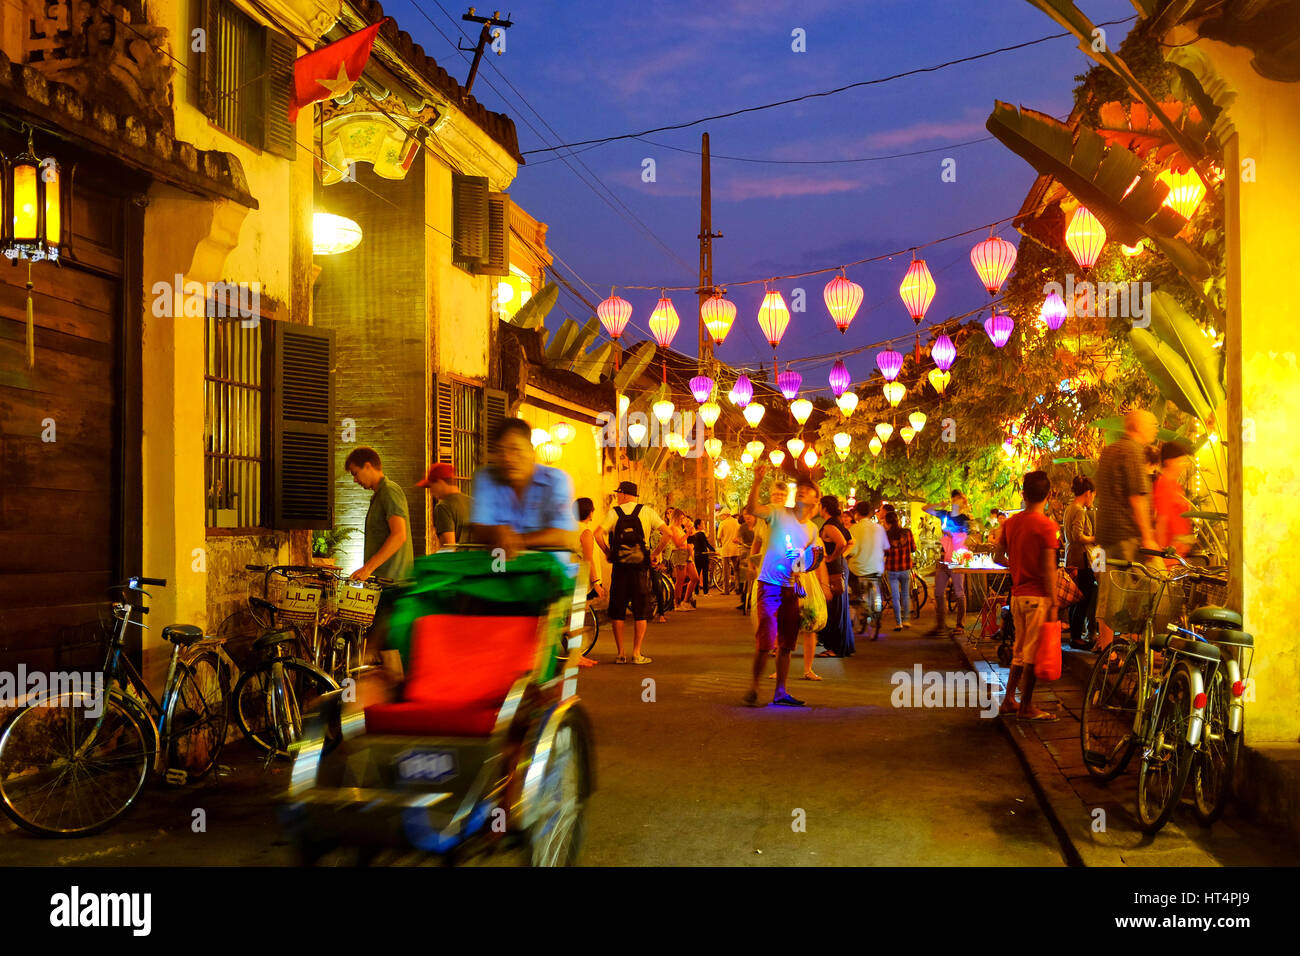 Locals and tourist in Tran Phu street at night, Hoi An, Vietnam Stock Photo